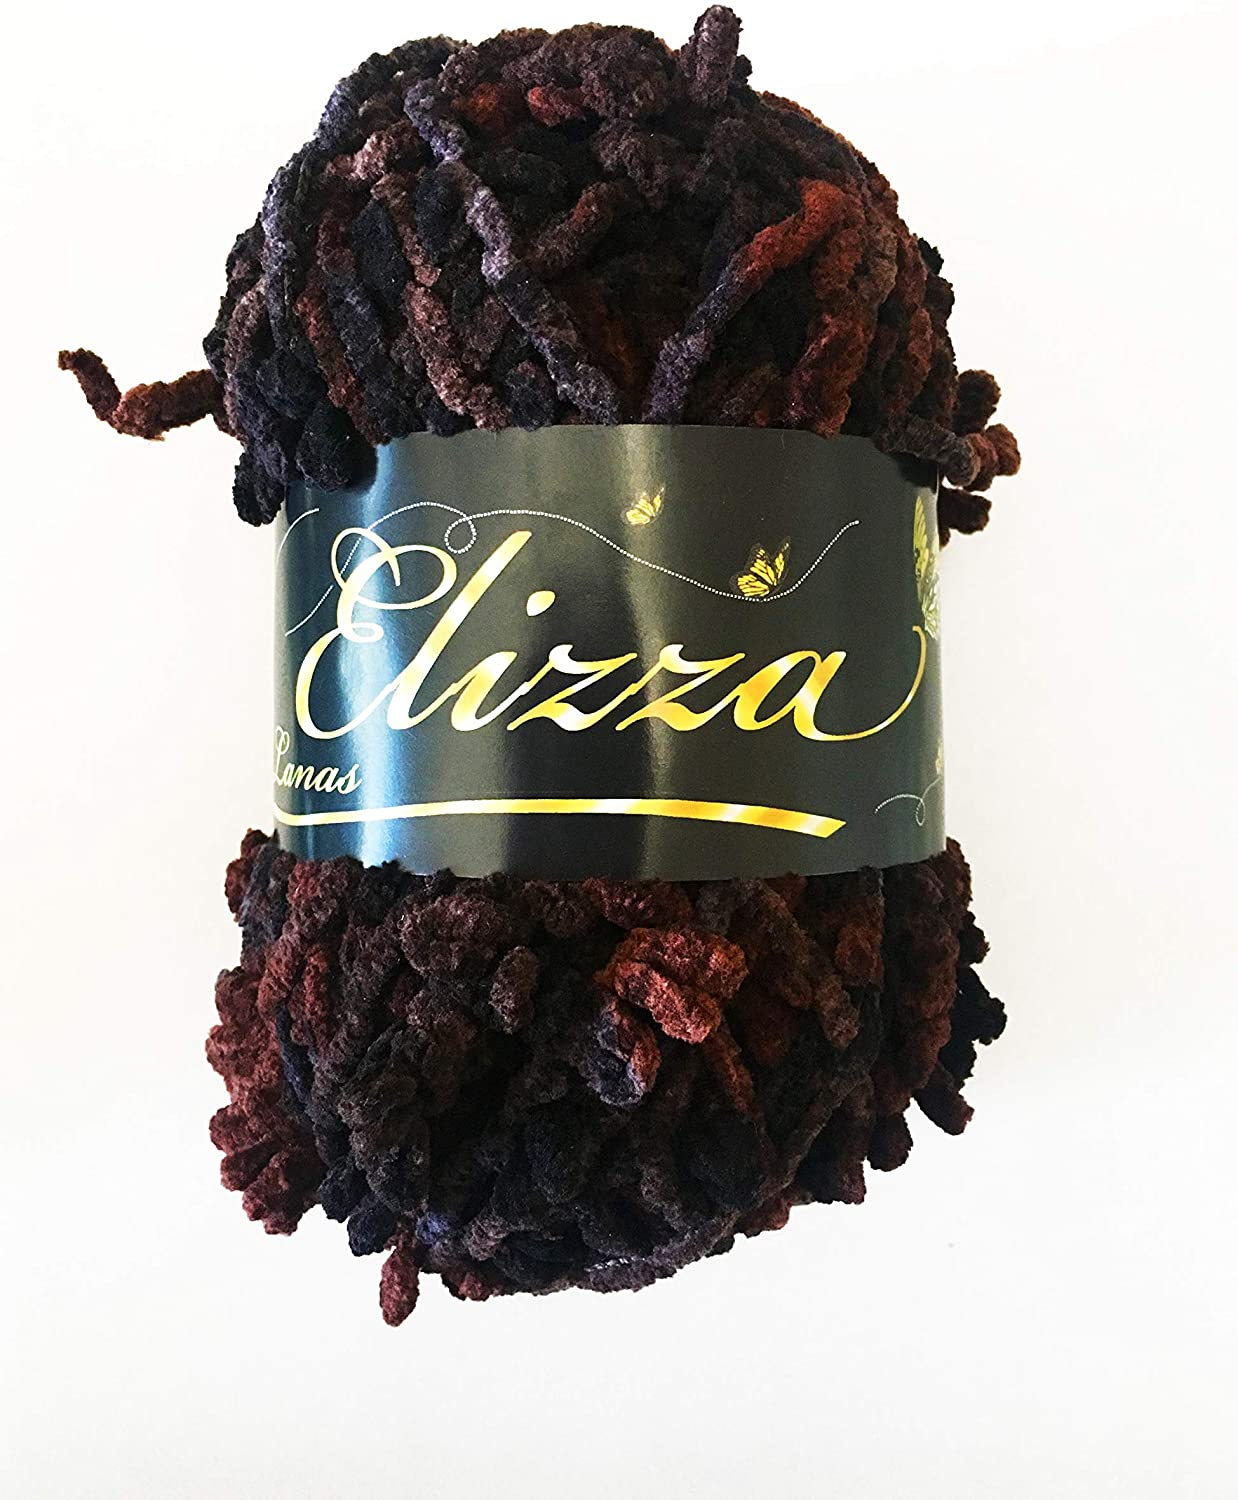 Yarn Wool Flower Elizza's Brand - Color 05 Pack x 2 Units